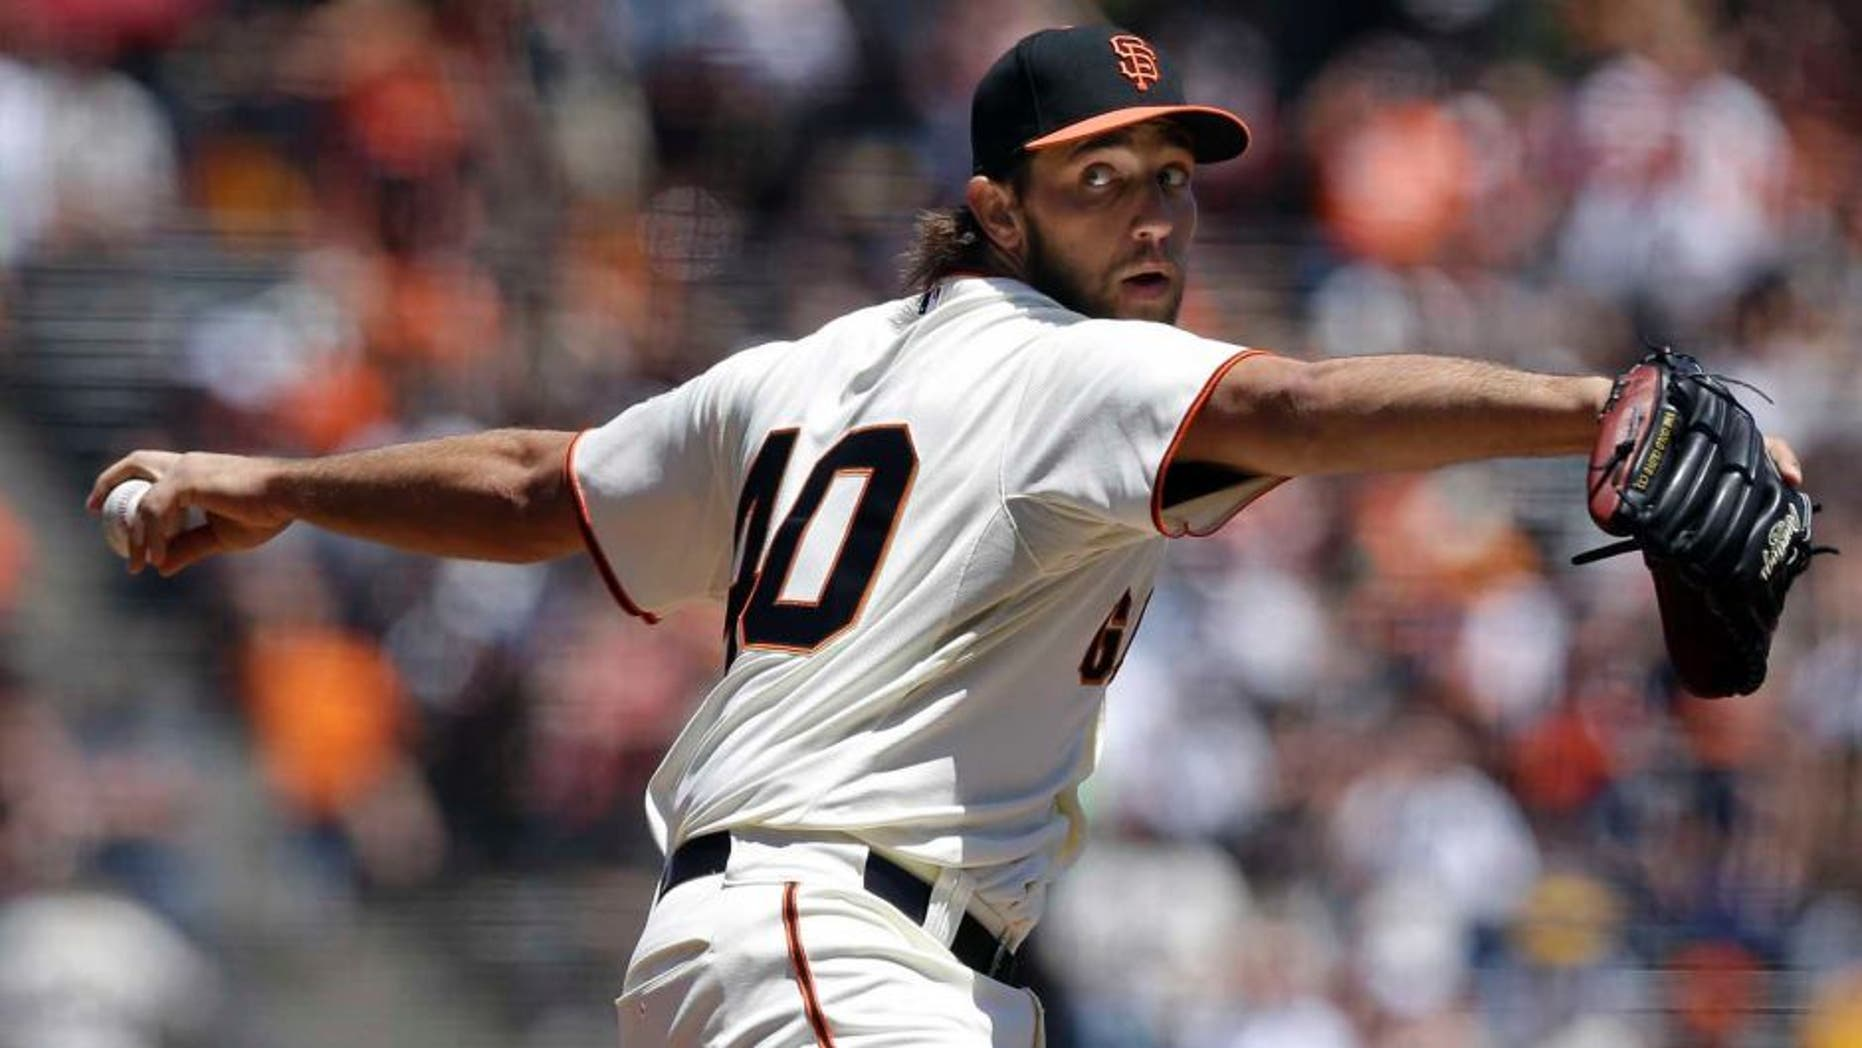 Sunday, May 25: San Francisco Giants pitcher Madison Bumgarner throws against the Minnesota Twins during the first inning.